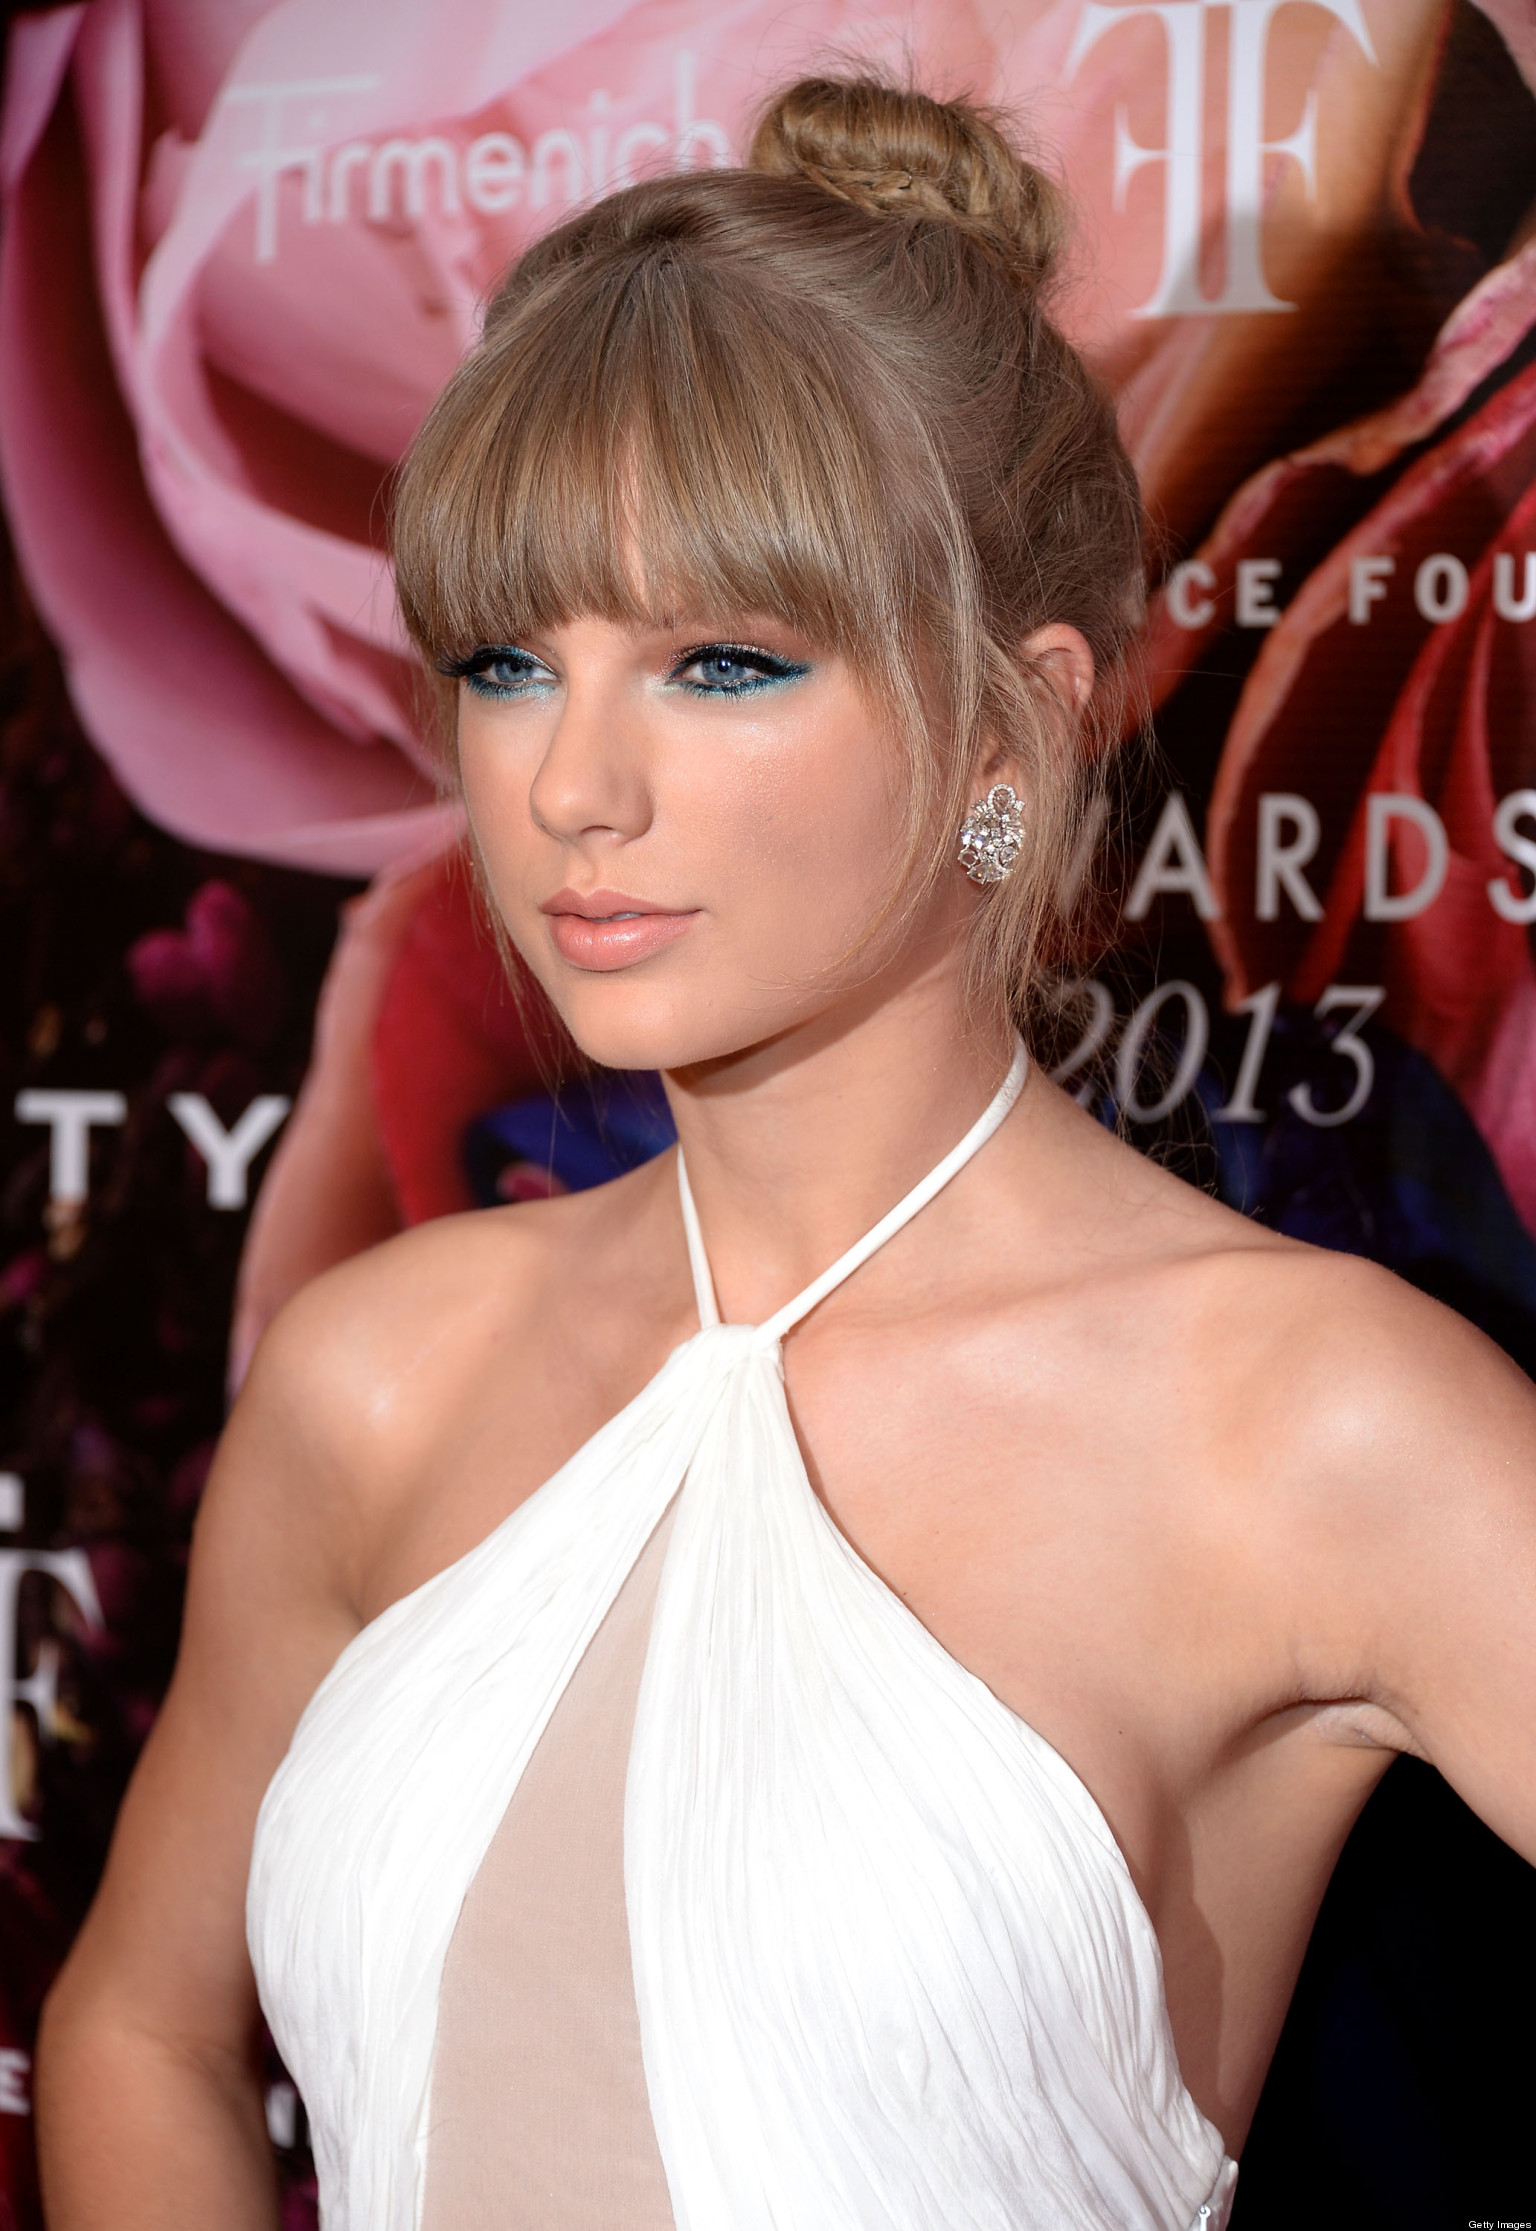 Consider, that taylor swift nude and naked opinion